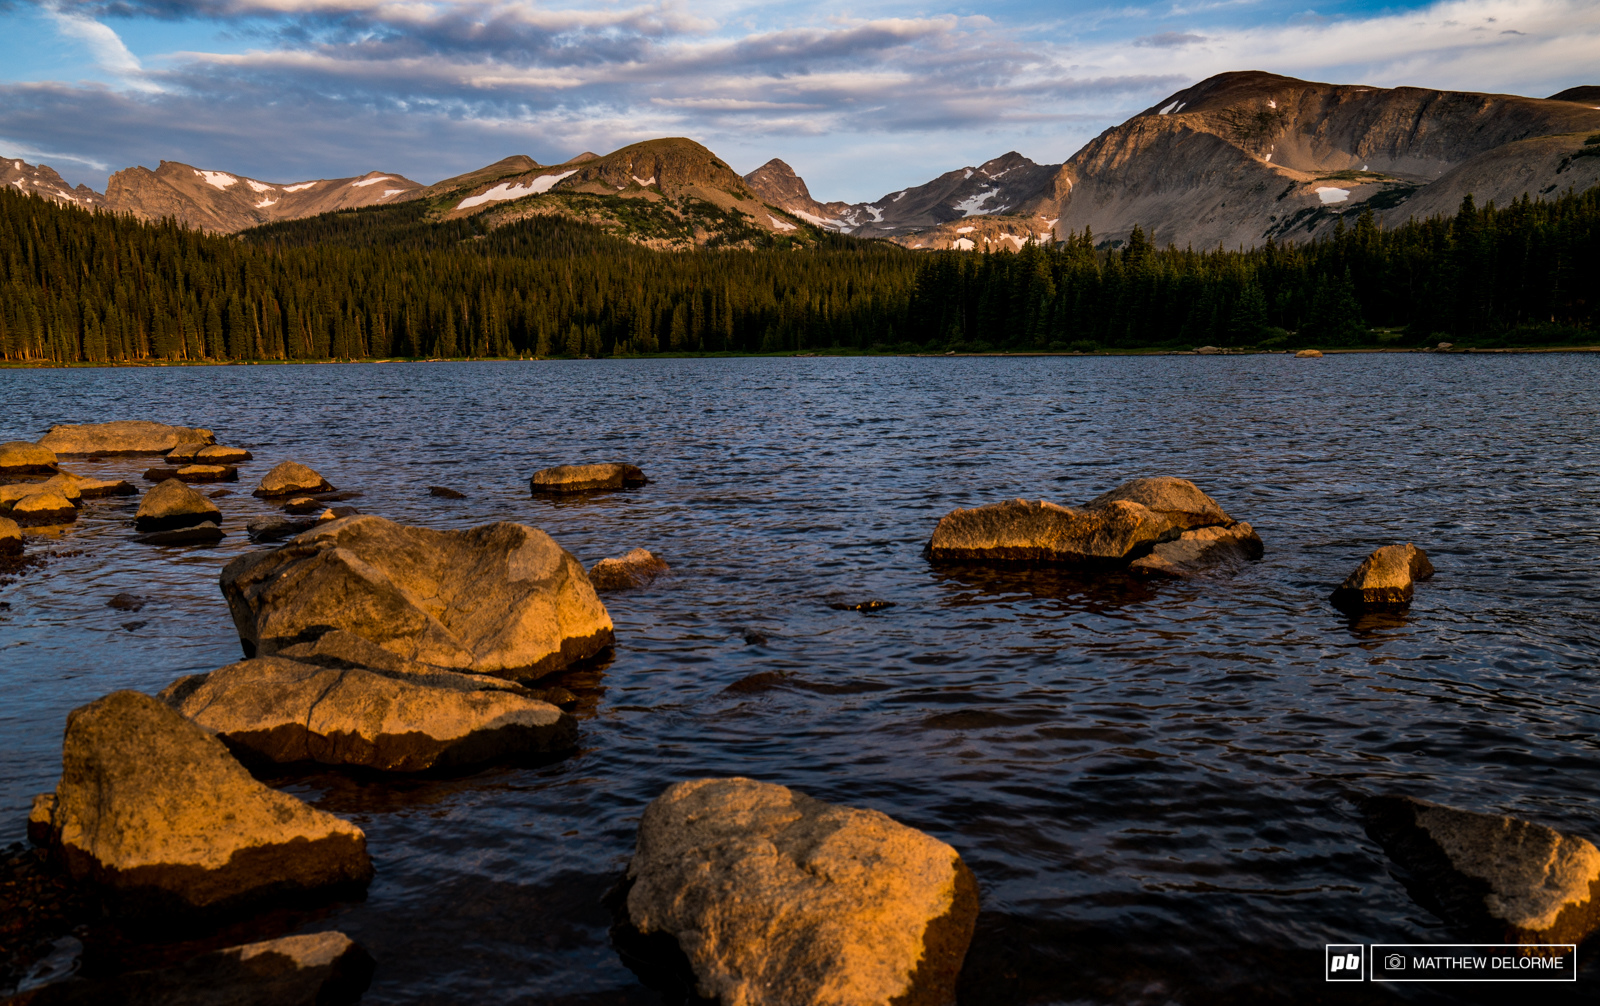 Brainard lake the gateway to the Indian peaks wilderness sits at over 10 000 feet.